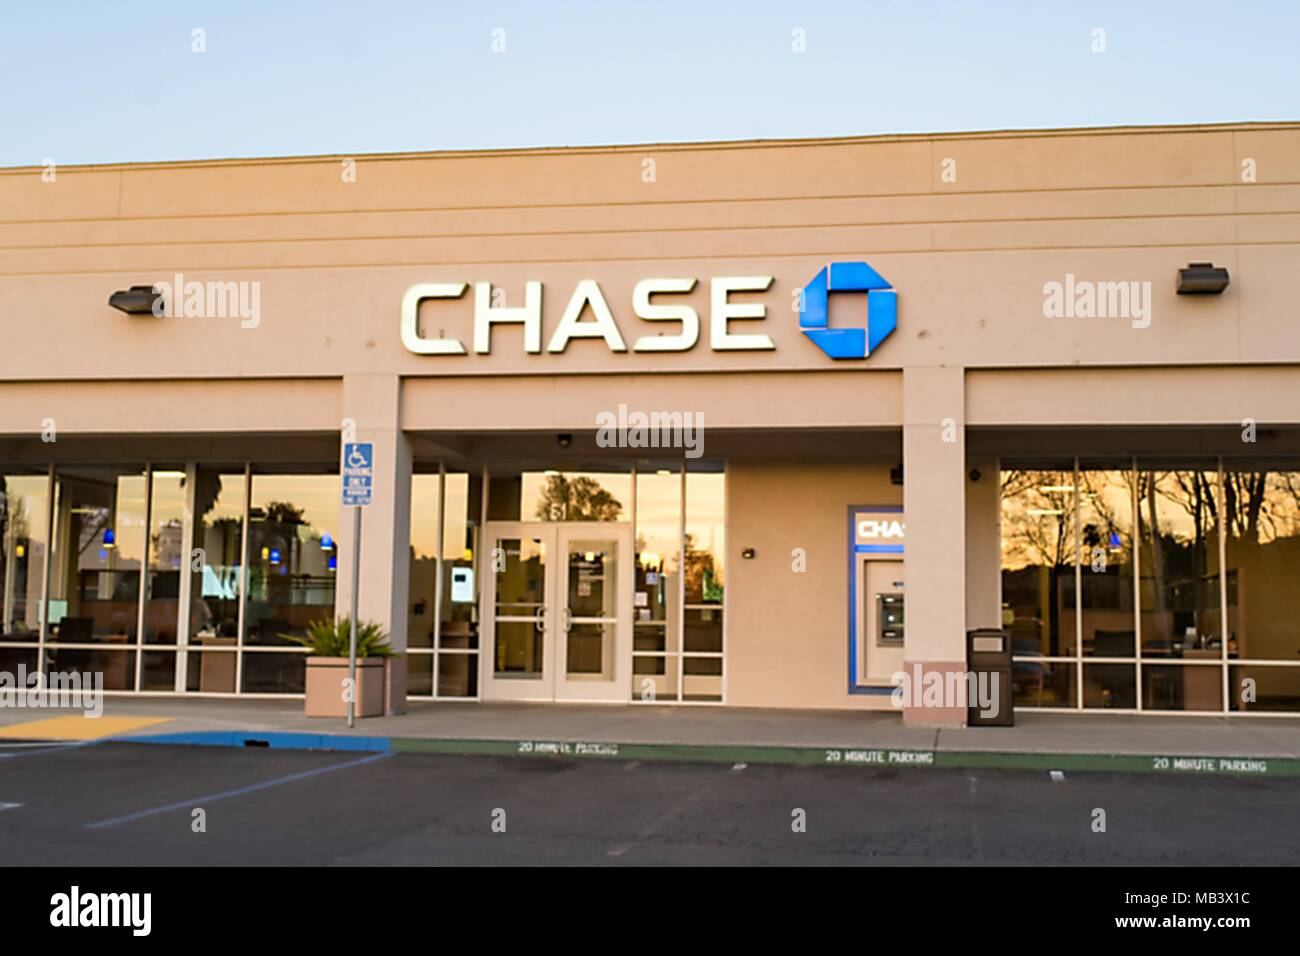 Dusk view of JP Morgan Chase bank branch with brightly lit ATM